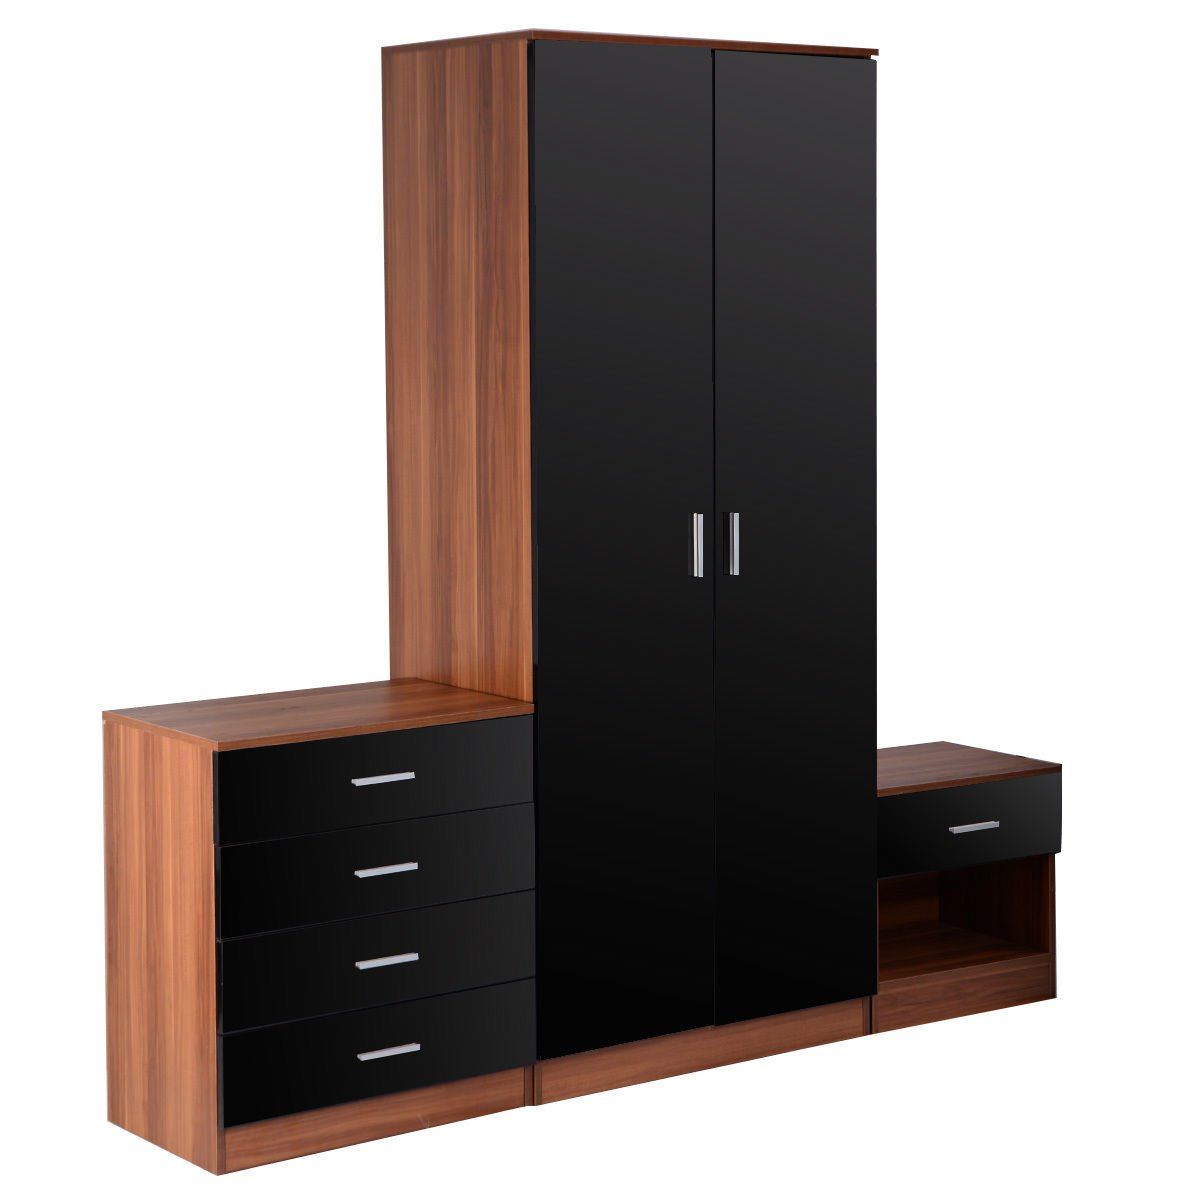 Cheap Bedroom Furniture Sets Under 200 Best Bedroom Sets